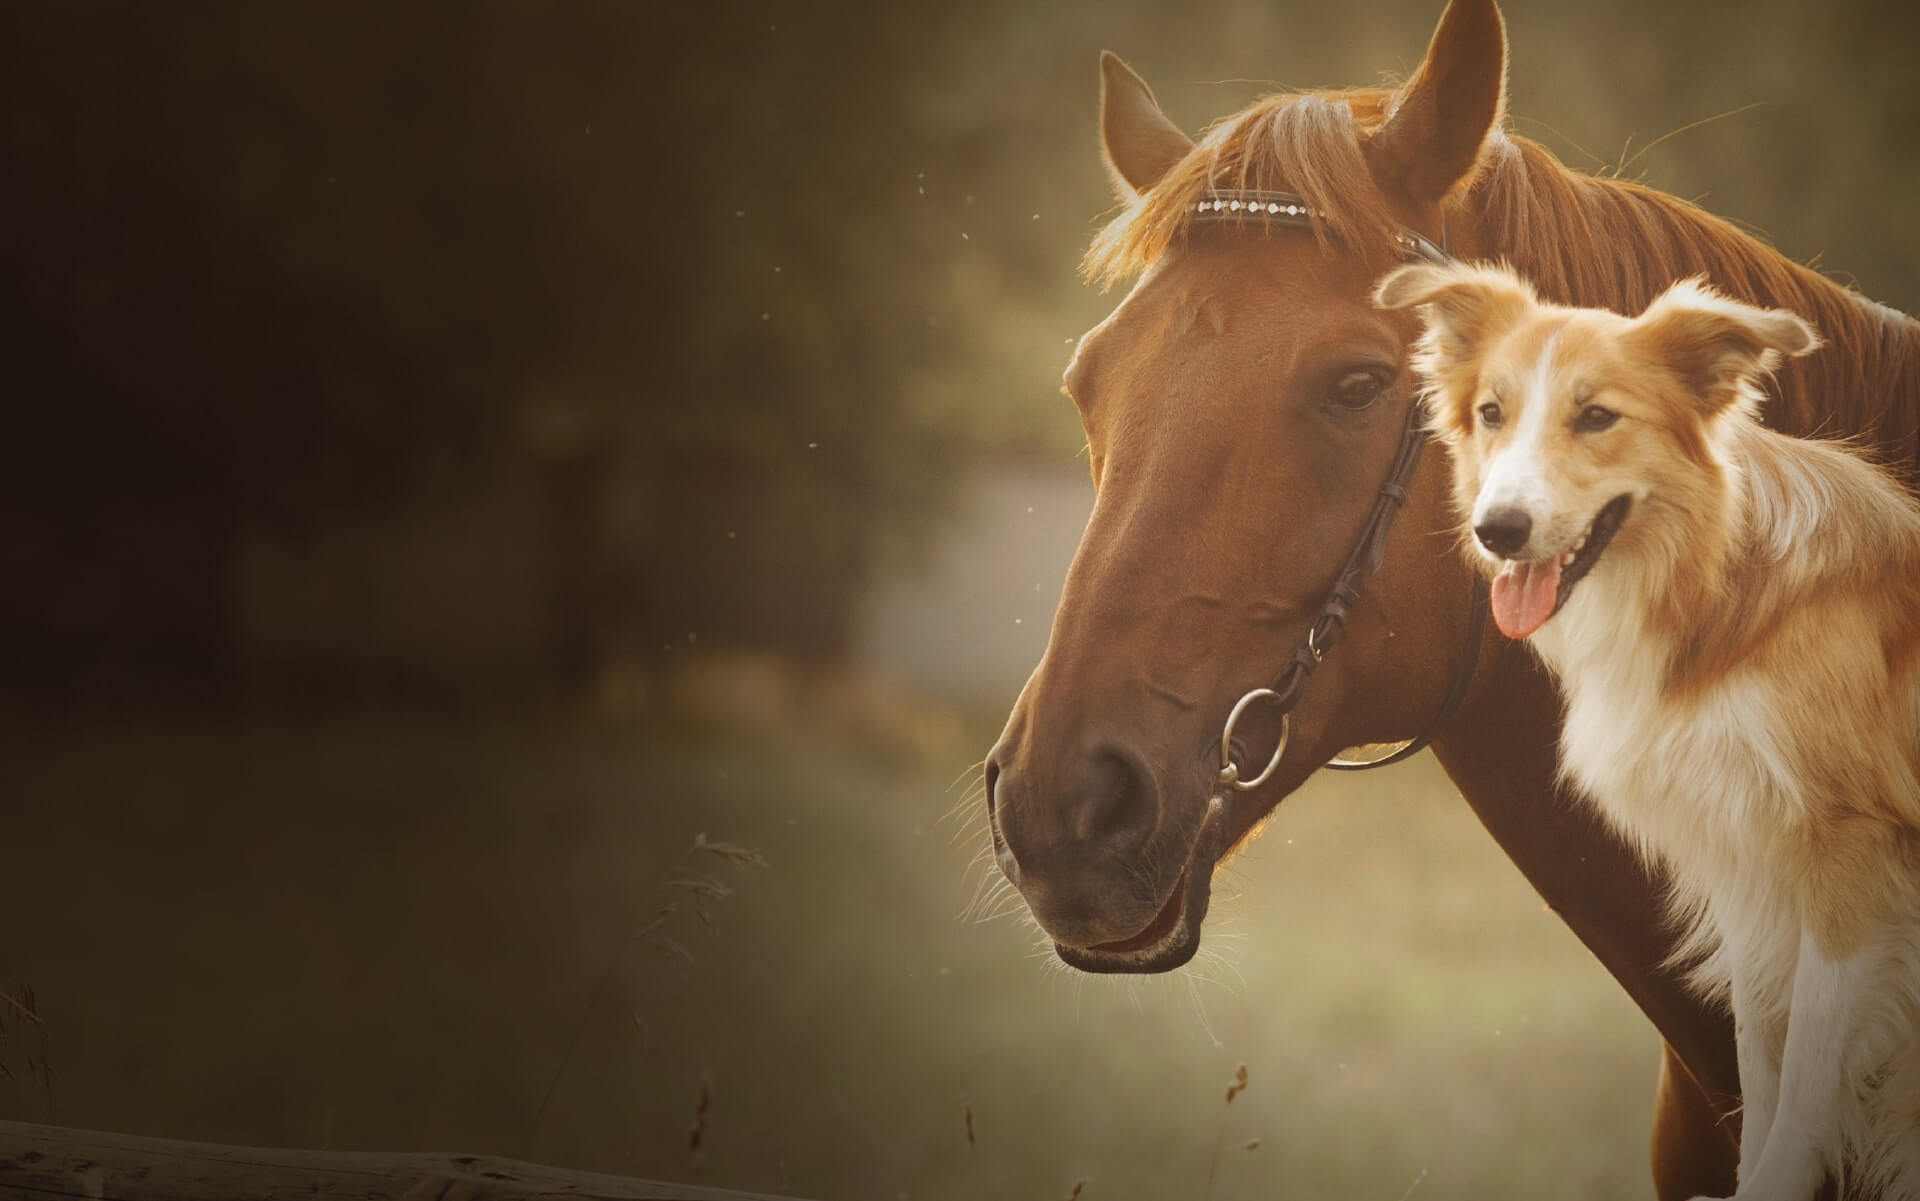 Image of Dog and Horse